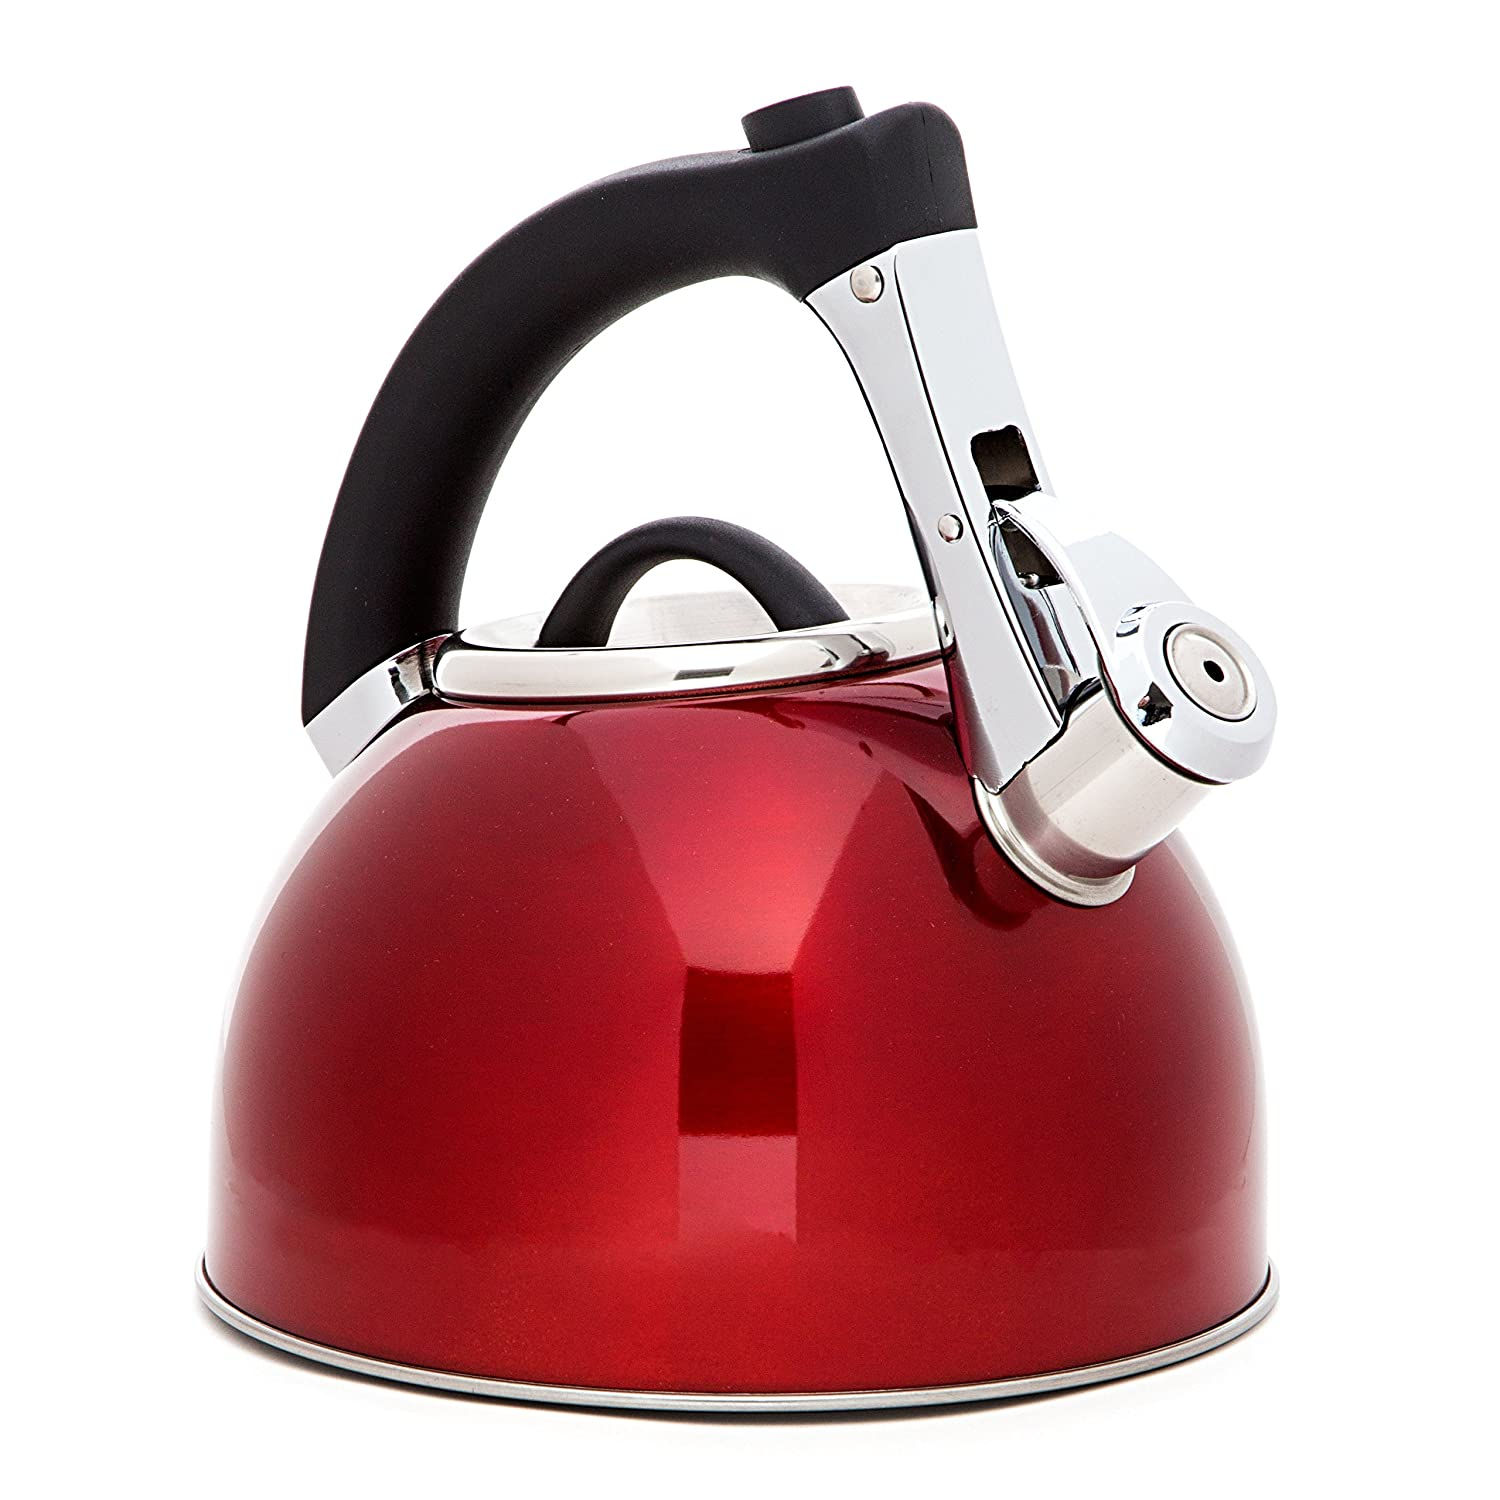 HULLR Stainless Steel Quick Water Boiling Tea Whistling Kettle, 3.1-Quart, with Easy Handling and Thumb-Press Pour Spout, Shiny Red HÜLLR